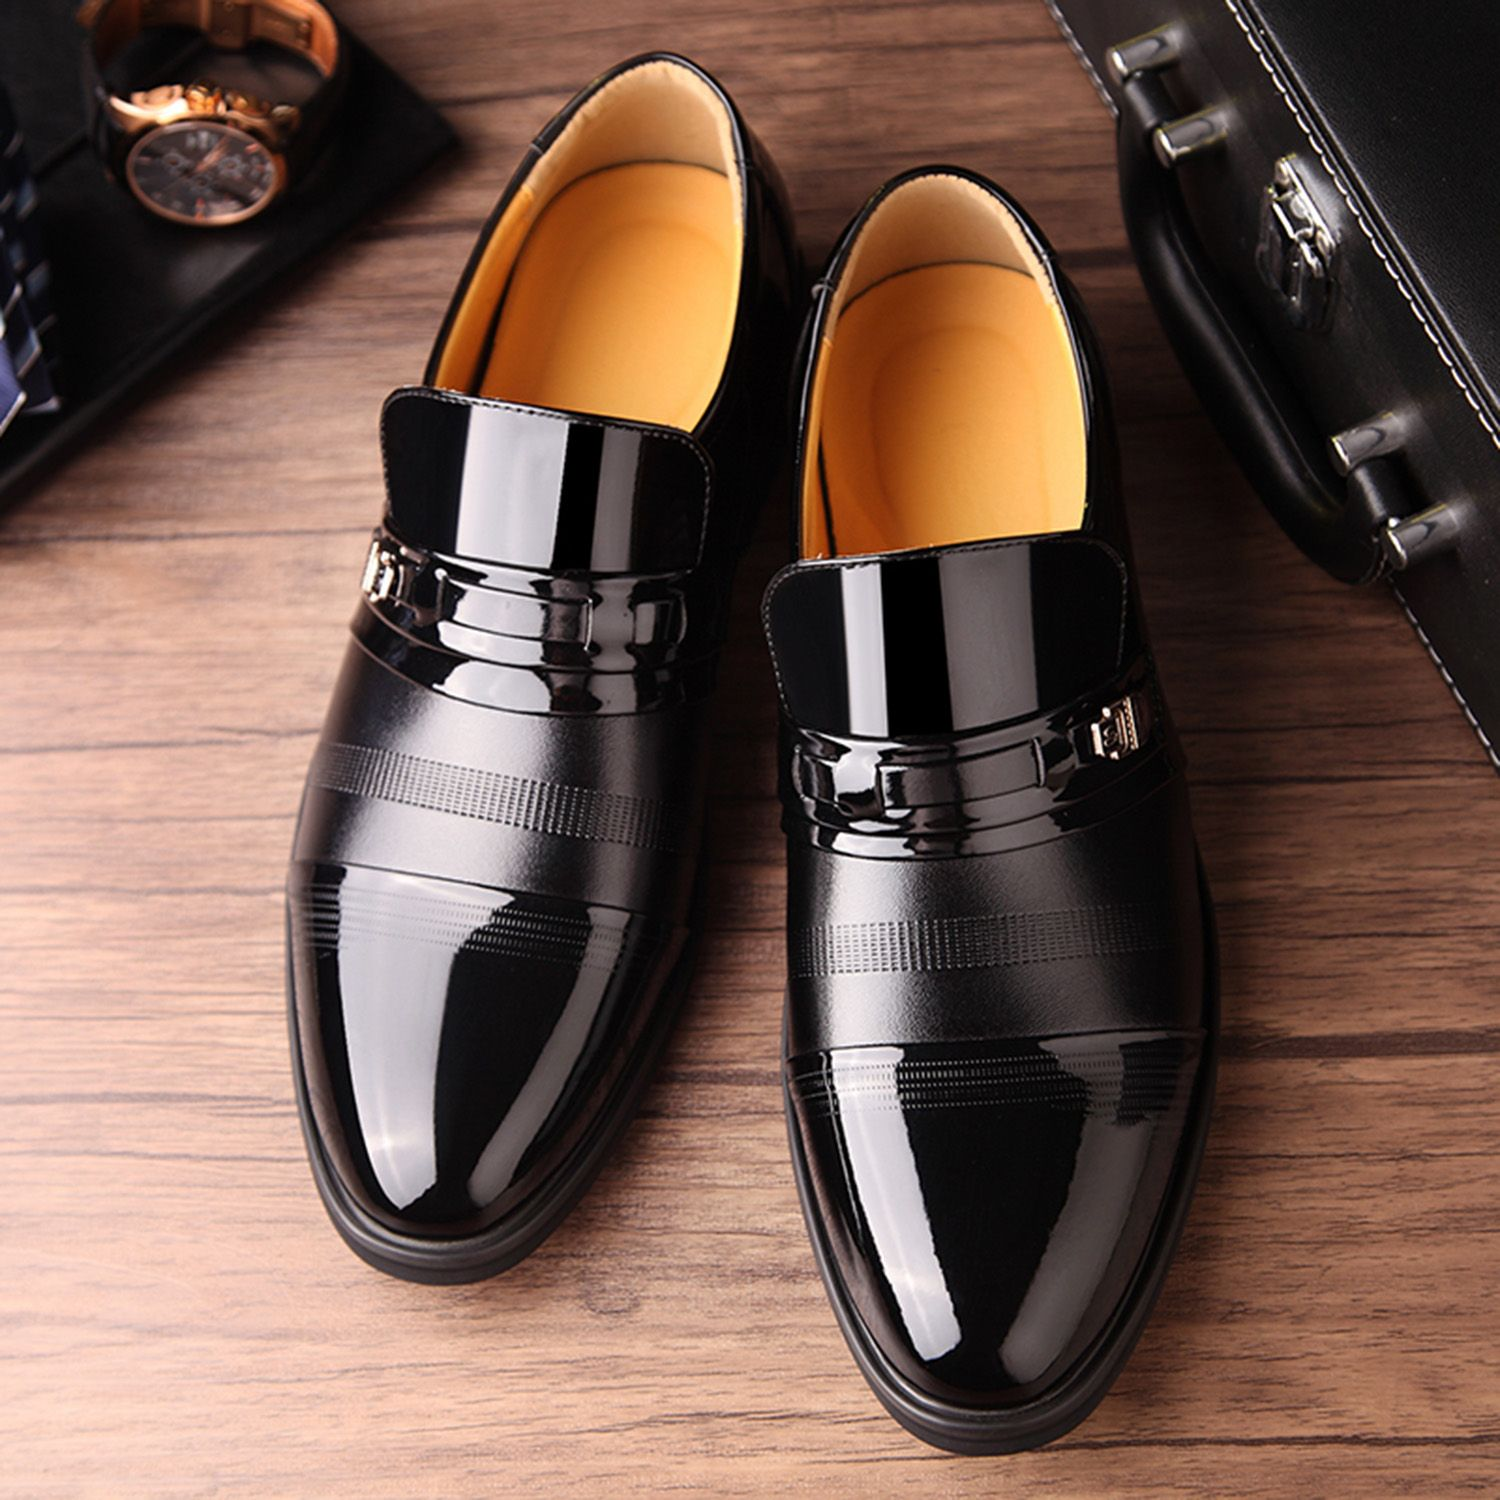 ABDB-Dress Shoes Oxford Shoes Lace Up Loafer Comfortable Classic Formal Fashion Modern Formal Business Shoes